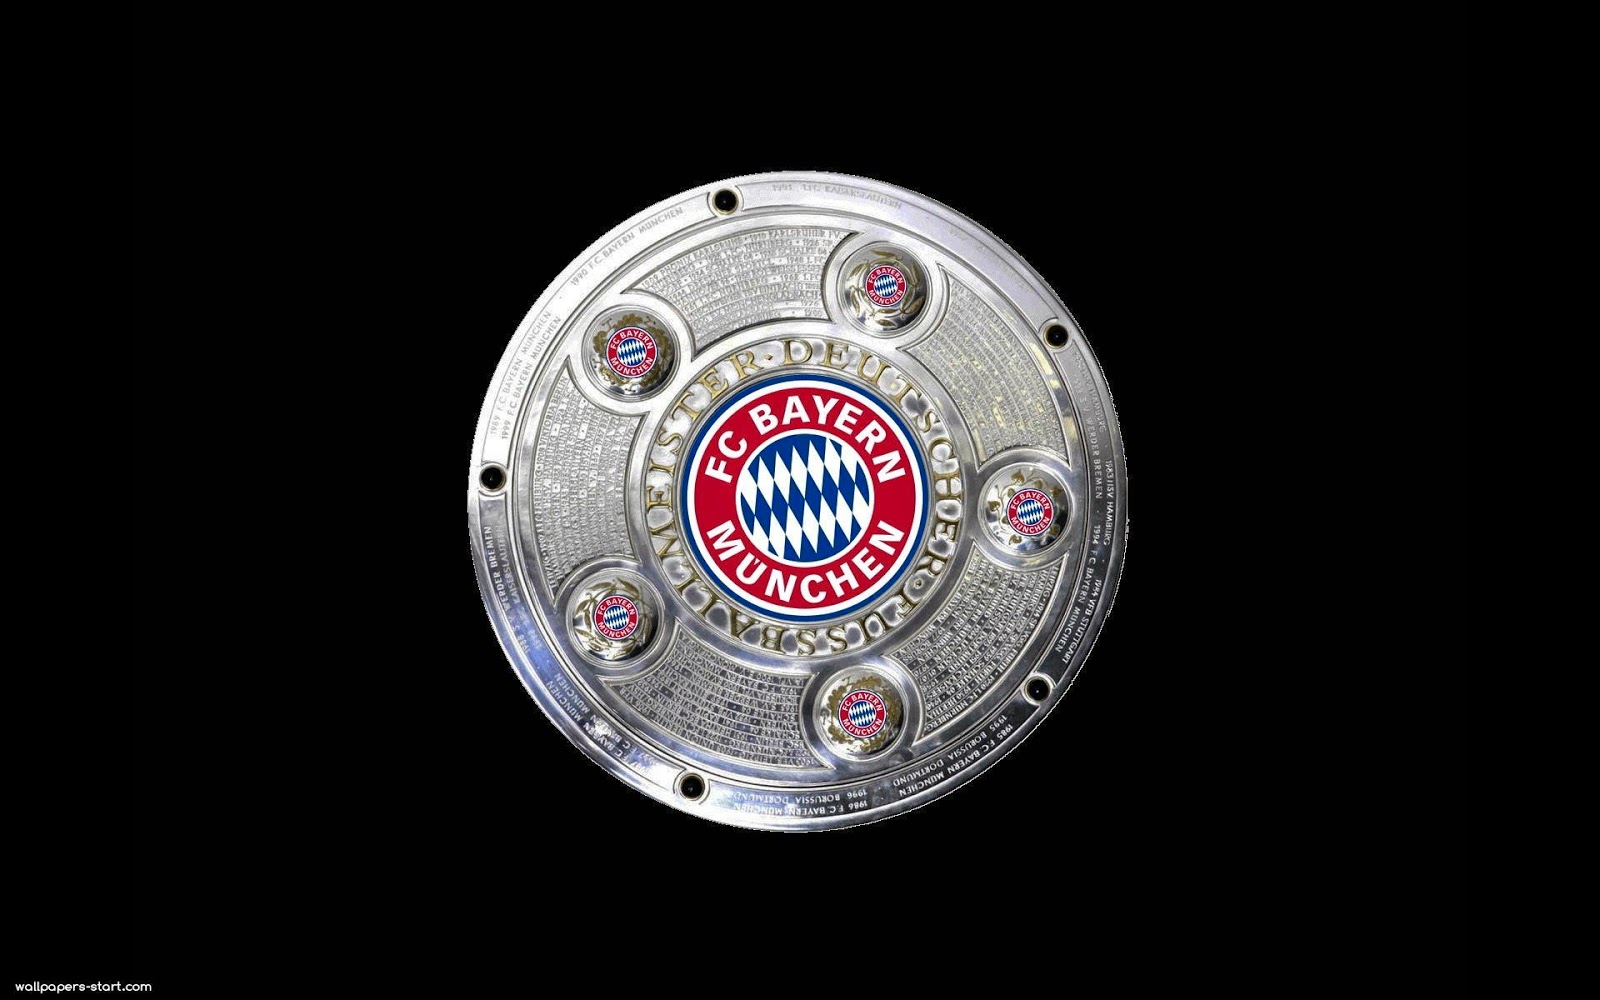 Bayern Munchen Football Club Wallpaper Gambar Lucu